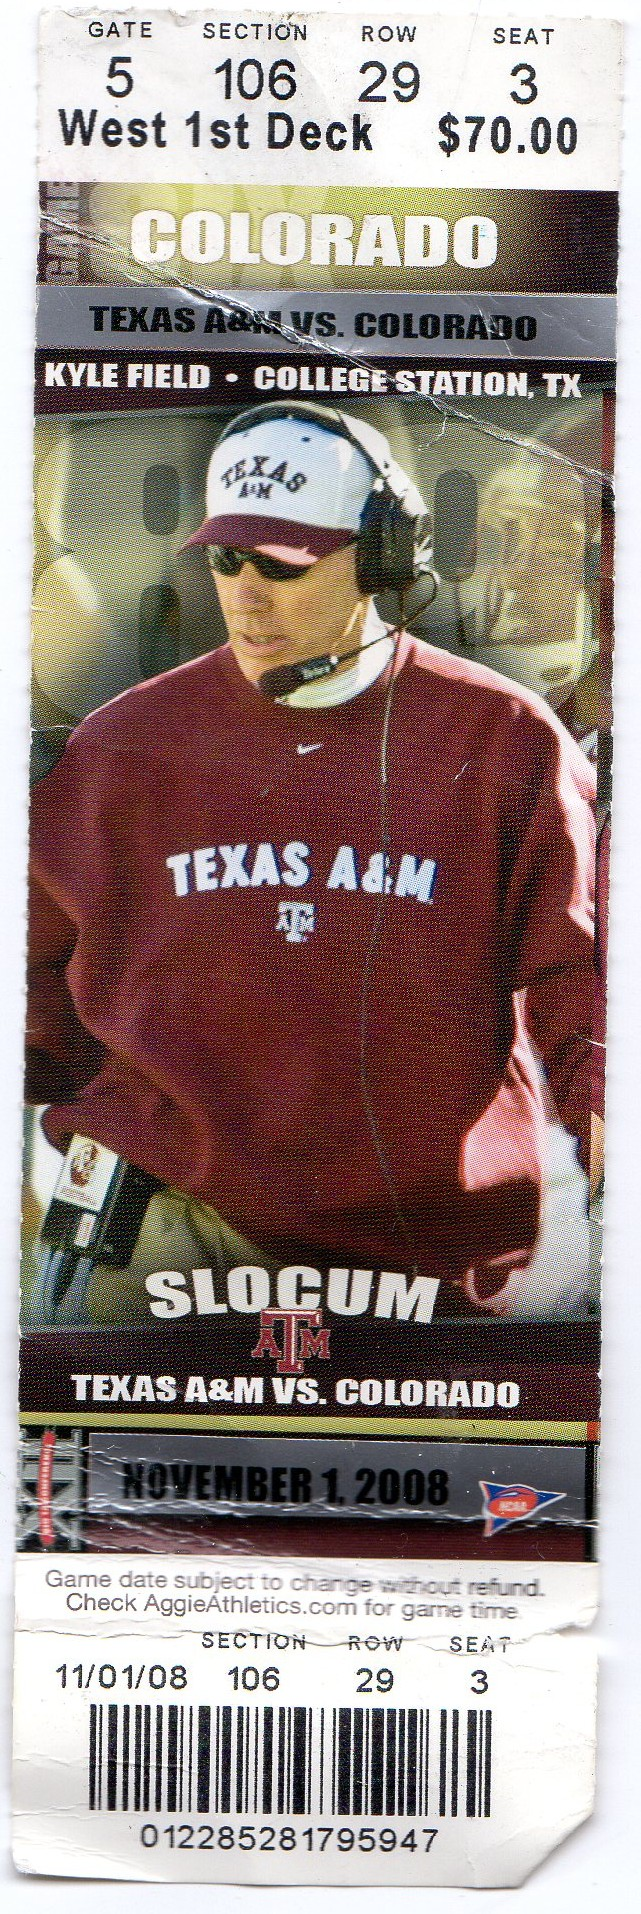 2008 game ticket of Texas A&M vs Colorado at Kyle Field in